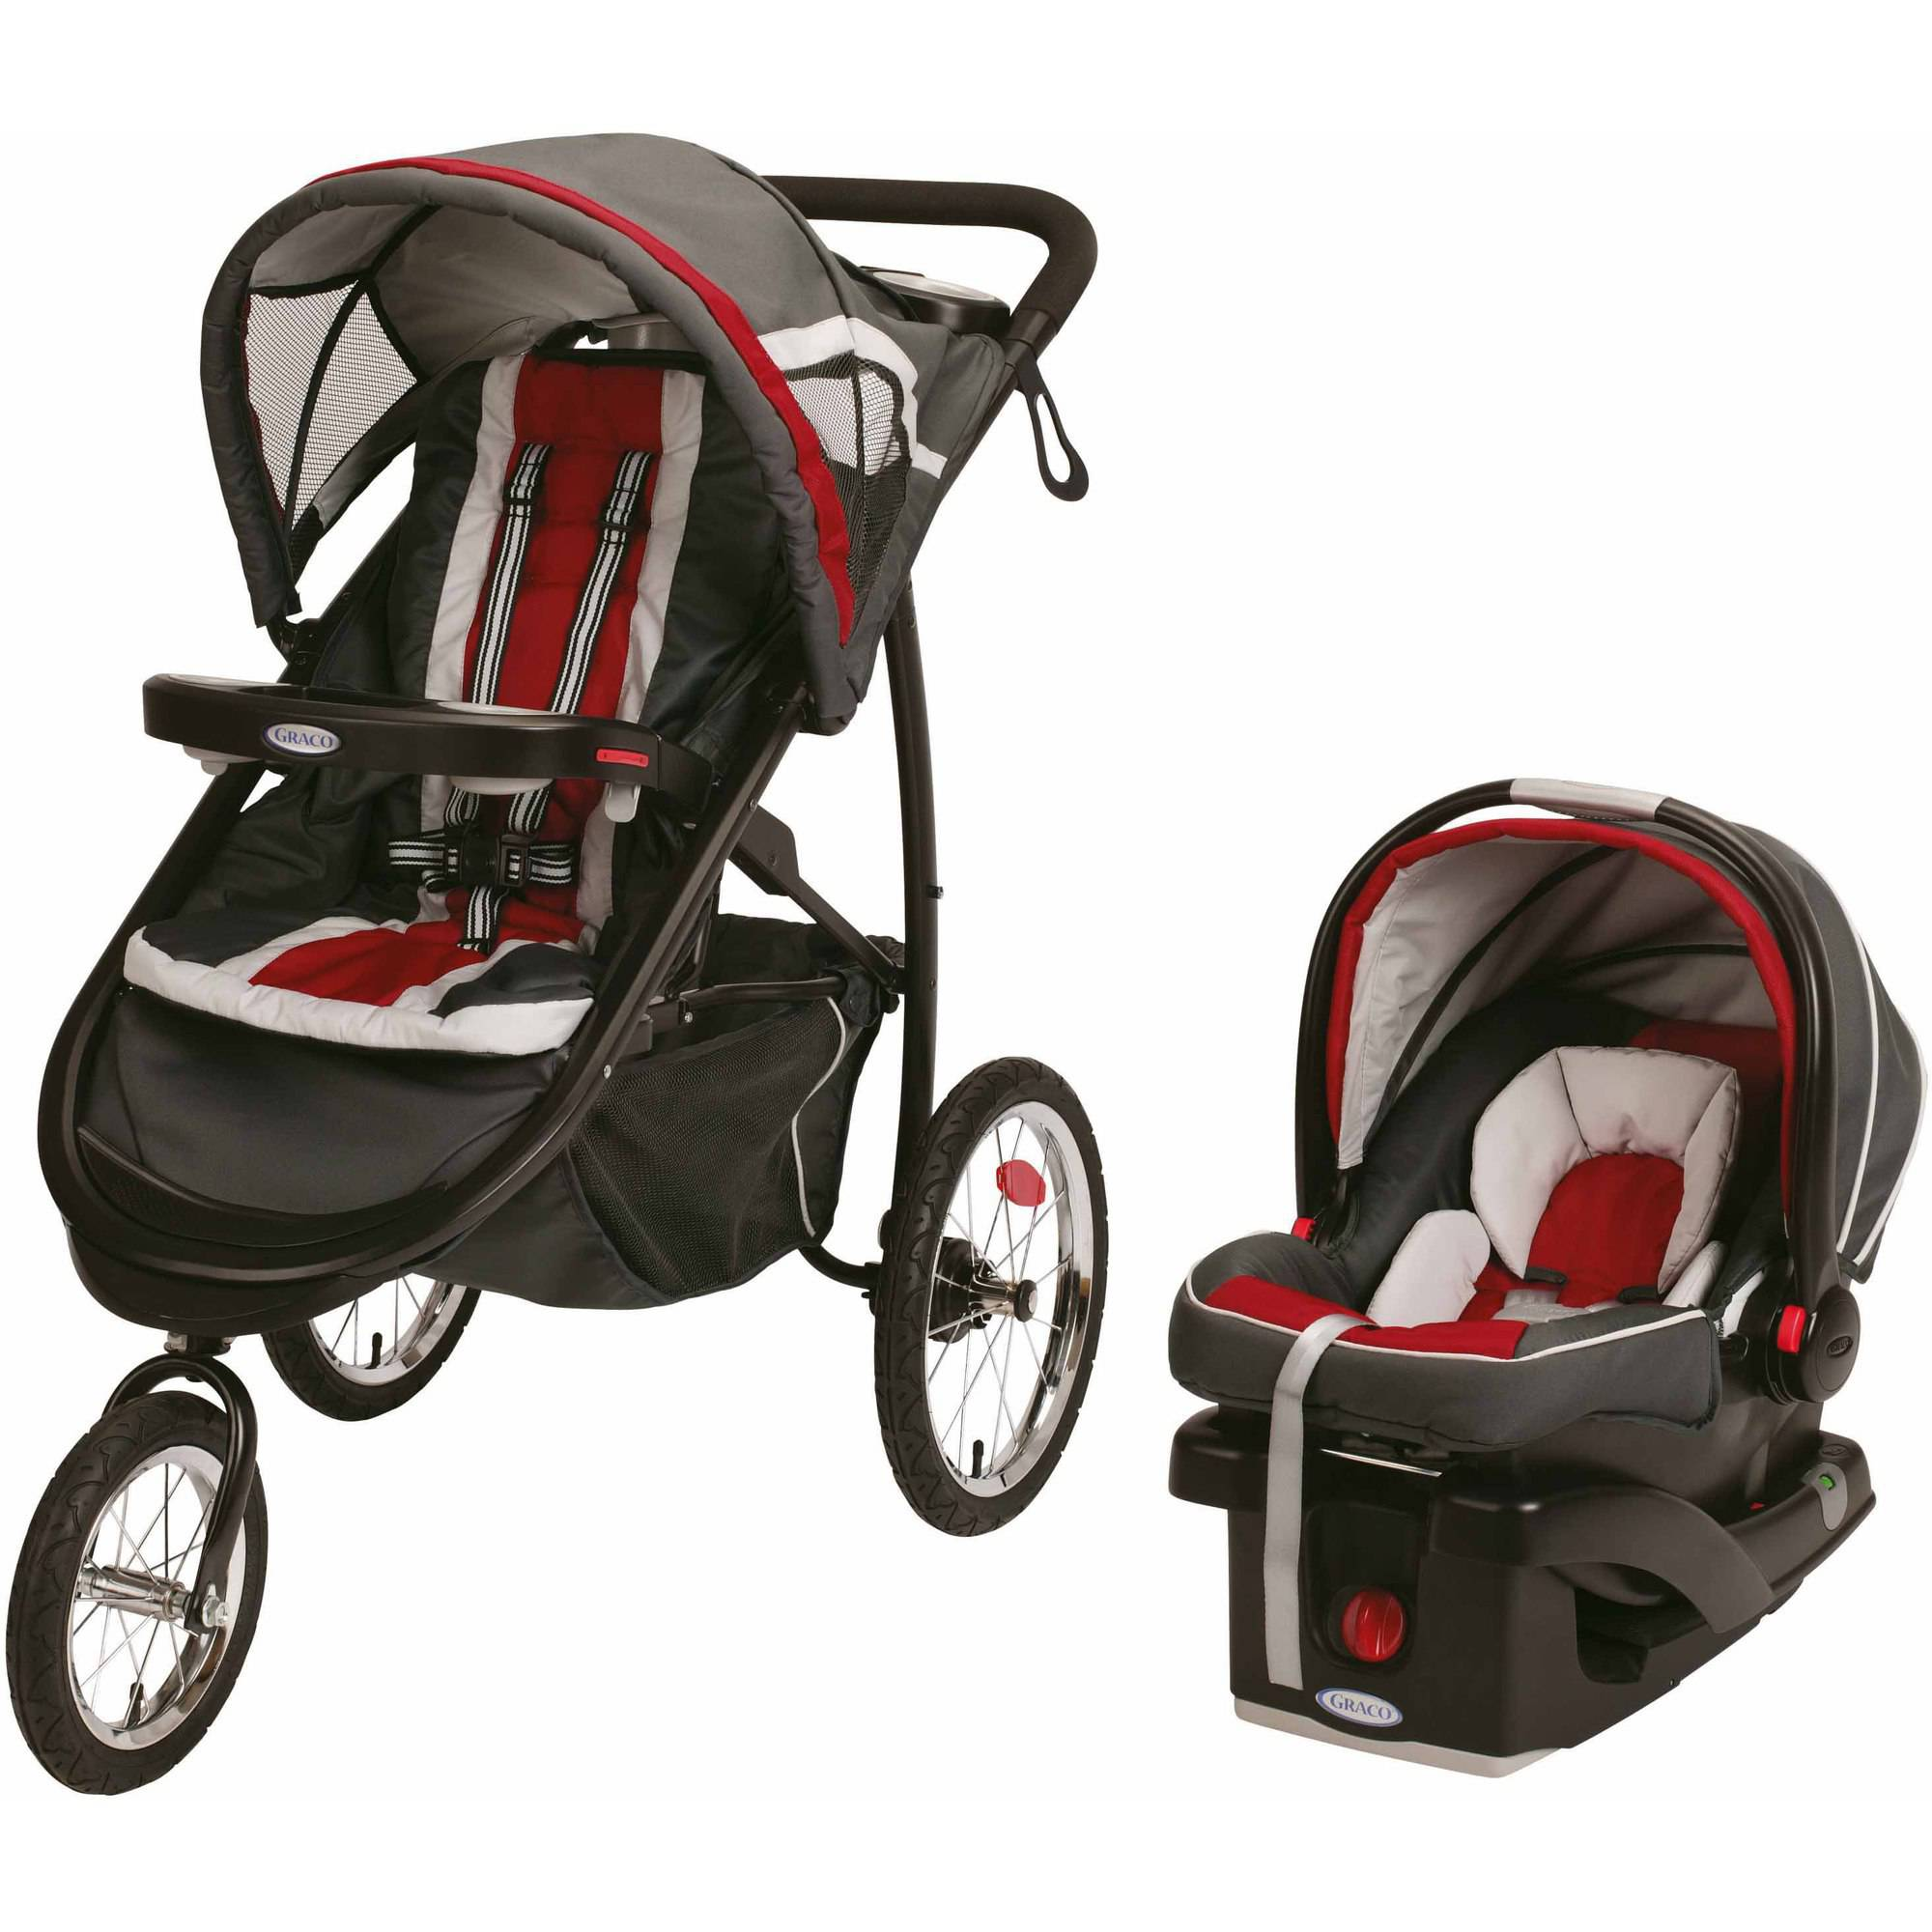 Graco FastAction Fold Jogger Click Connect Jogging Stroller Travel System, Chili Red